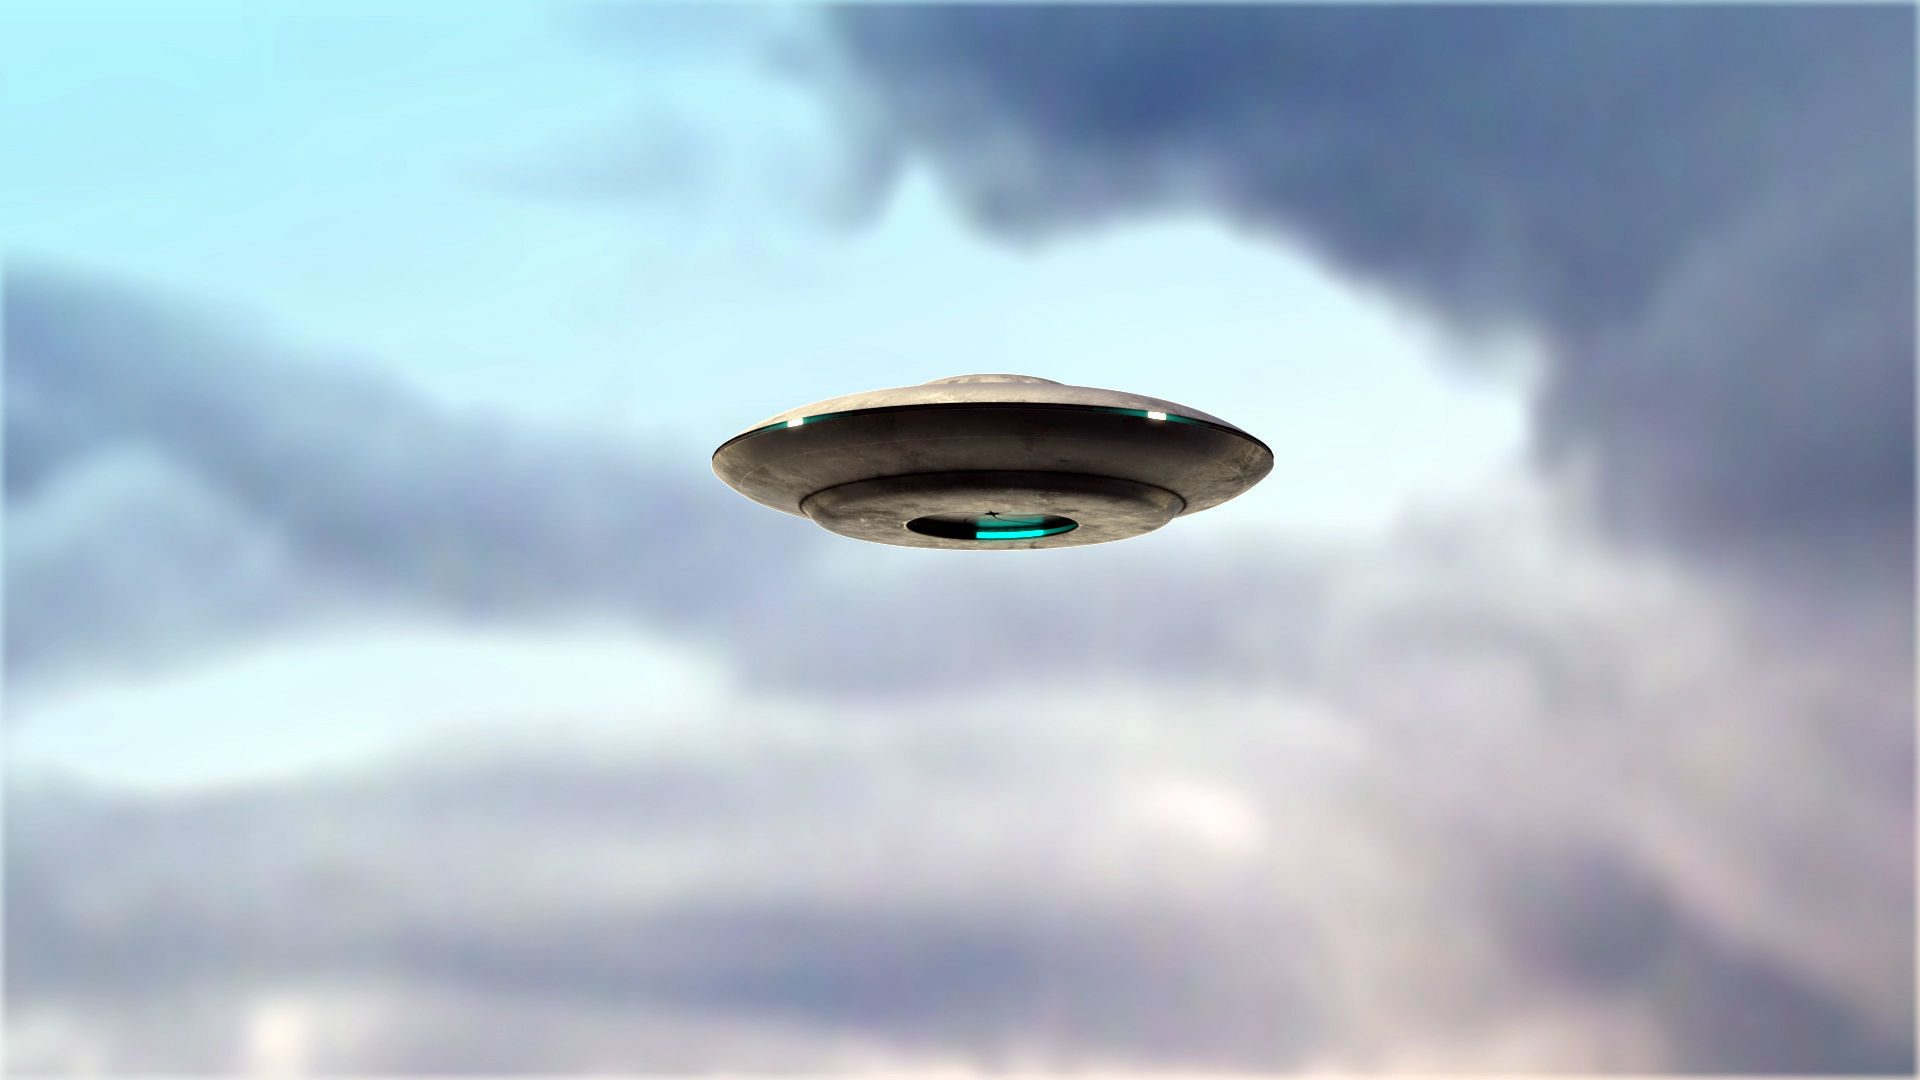 UFO rigged and animated